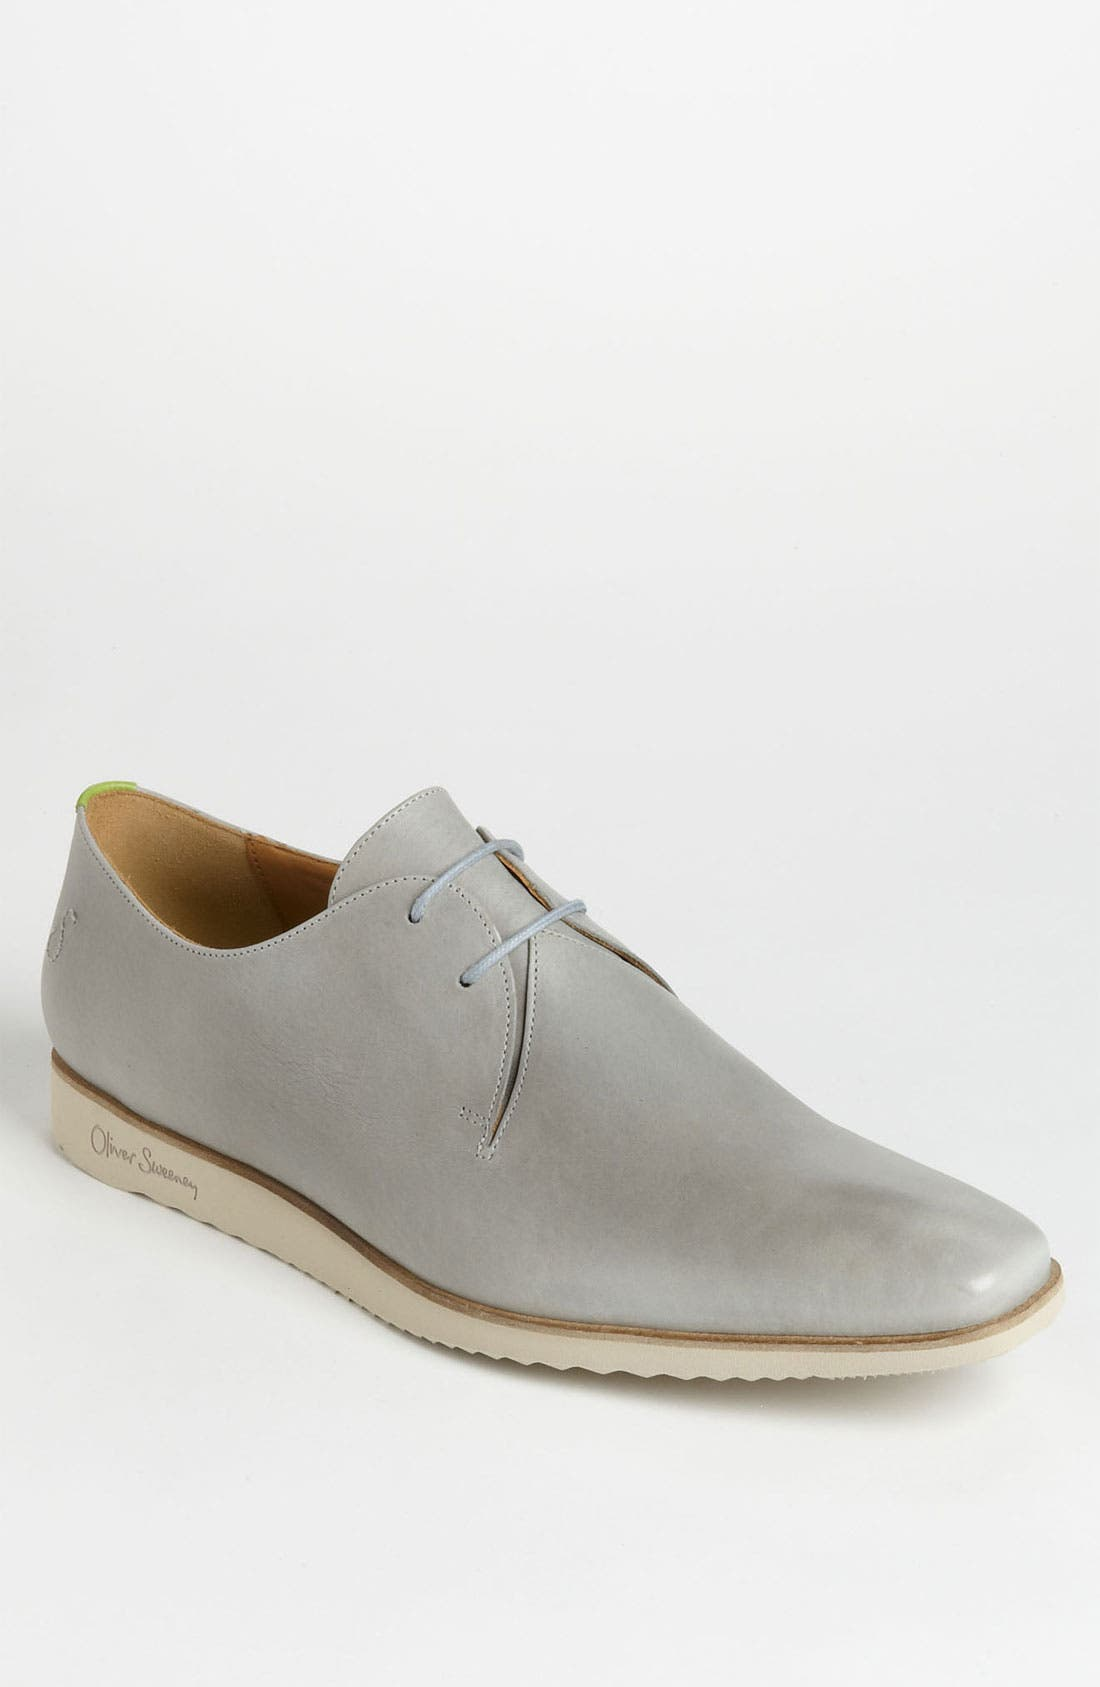 Alternate Image 1 Selected - Oliver Sweeney 'Rigo' Wholecut Oxford